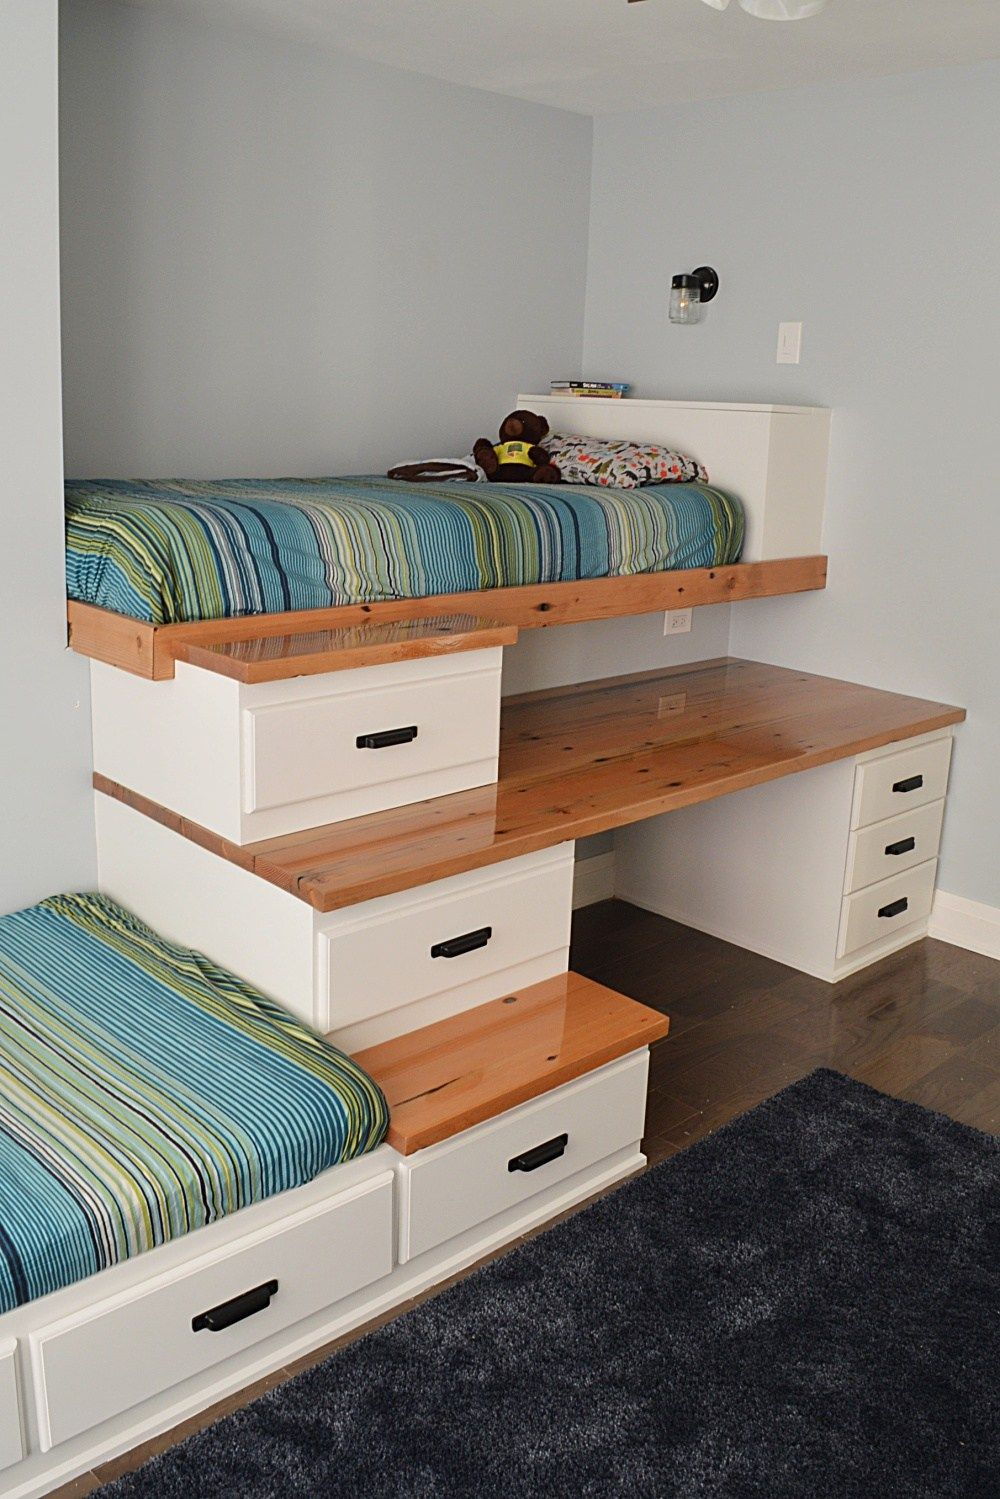 How to make a built in bed with storage